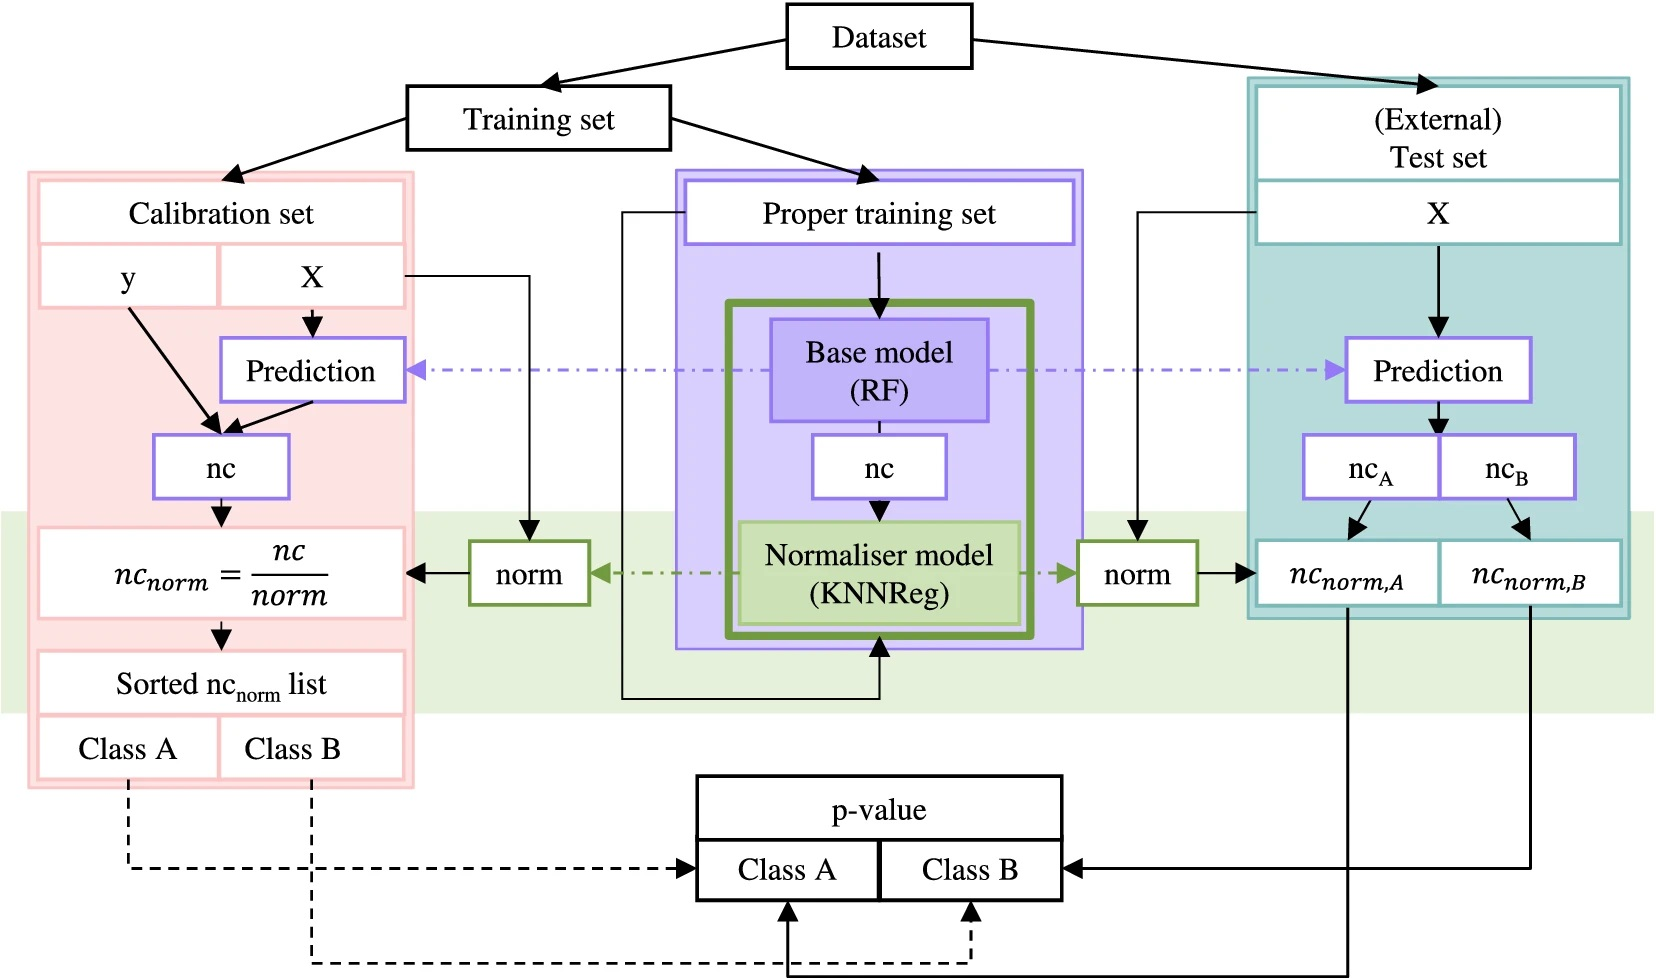 Overview of the conformal prediction (classification) framework. The green bar highlights the KNN Regressor normaliser model introduced in KnowTox (figure taken from Morger, 2020).